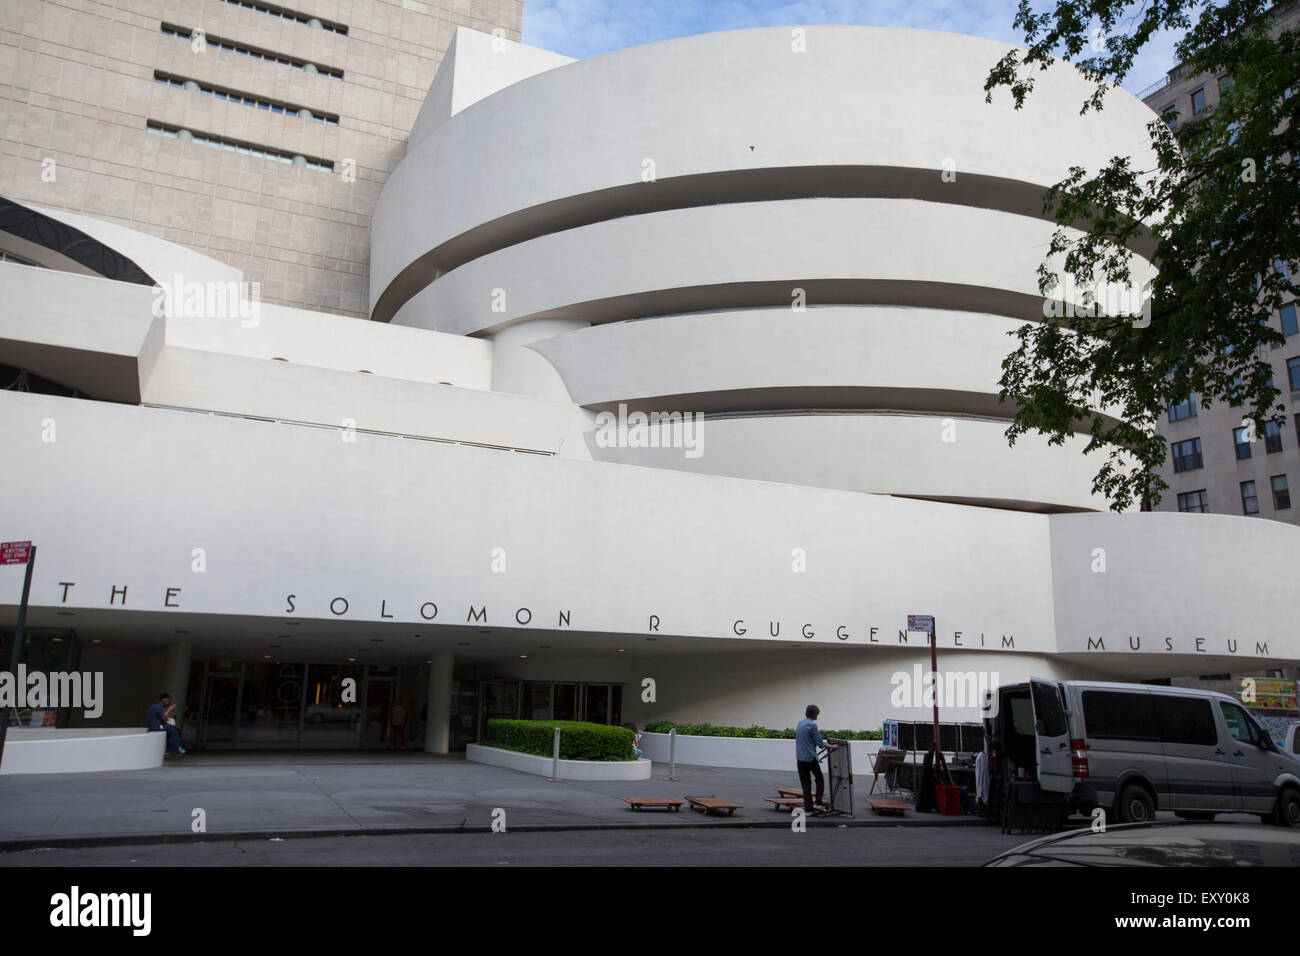 NEW YORK - May 27, 2015: The Solomon R. Guggenheim Museum, often referred to as The Guggenheim, is an art museum located at 1071 Stock Photo